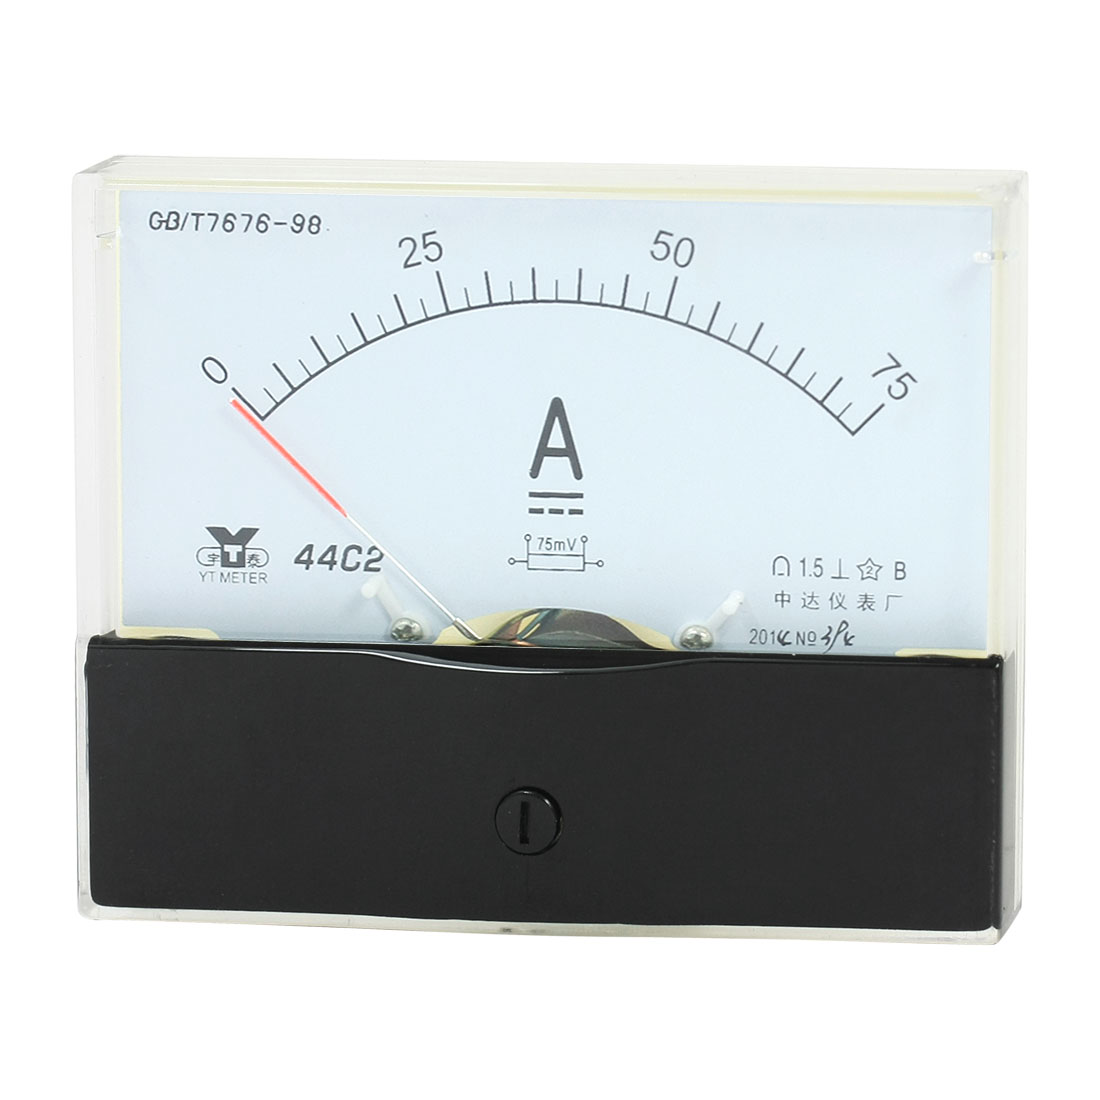 Rectangle Measurement Tool Analog Panel Ammeter Gauge DC 0 - 75A Measuring Range 44C2